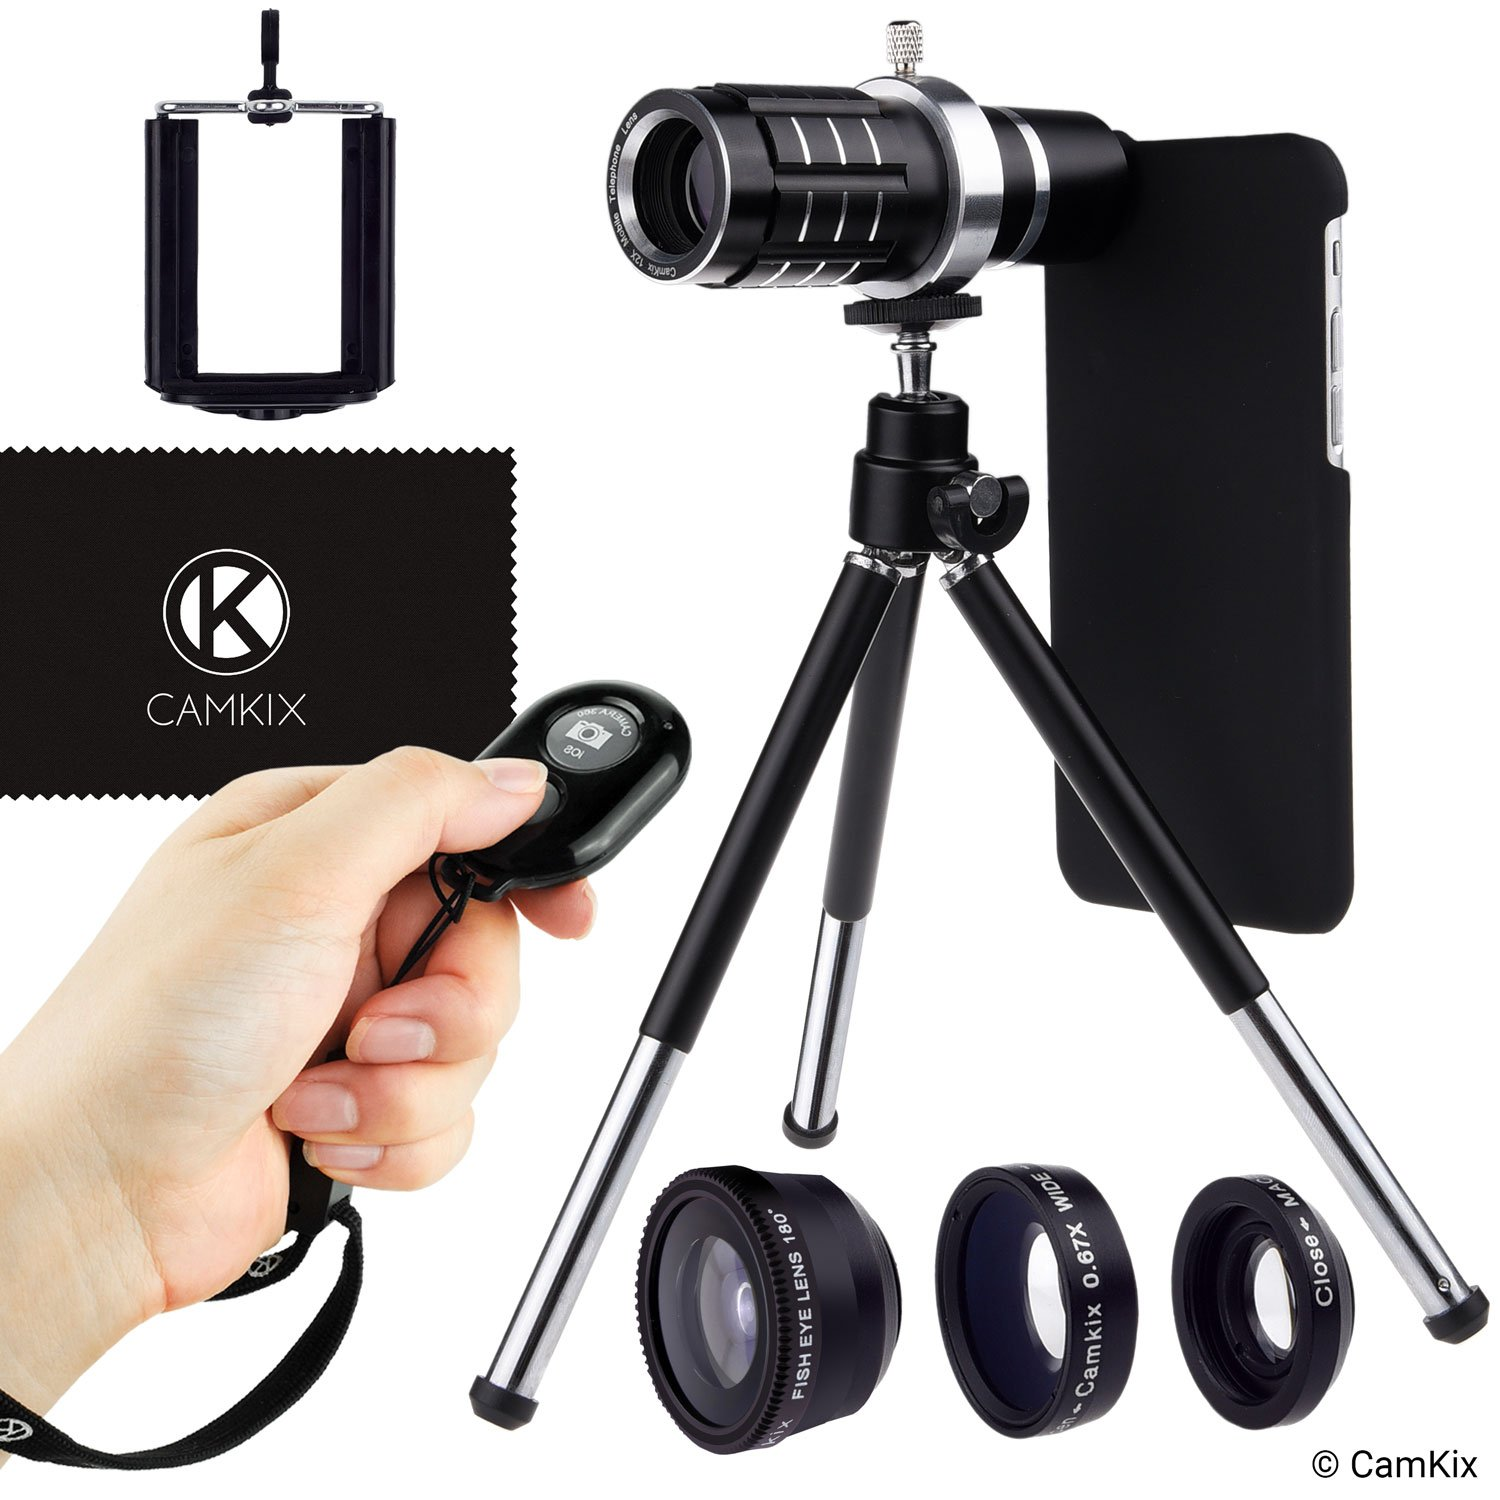 Lens + Shutter Remote Kit for Apple iPhone 6/6s + 6 Plus/6s Plus - Incl Bluetooth Camera RC, 12x Telephoto + Fisheye + Macro + Wide Angle Lens + Tripod, Holder, Hard Case (2x), Bag, Cleaning Cloth by CamKix